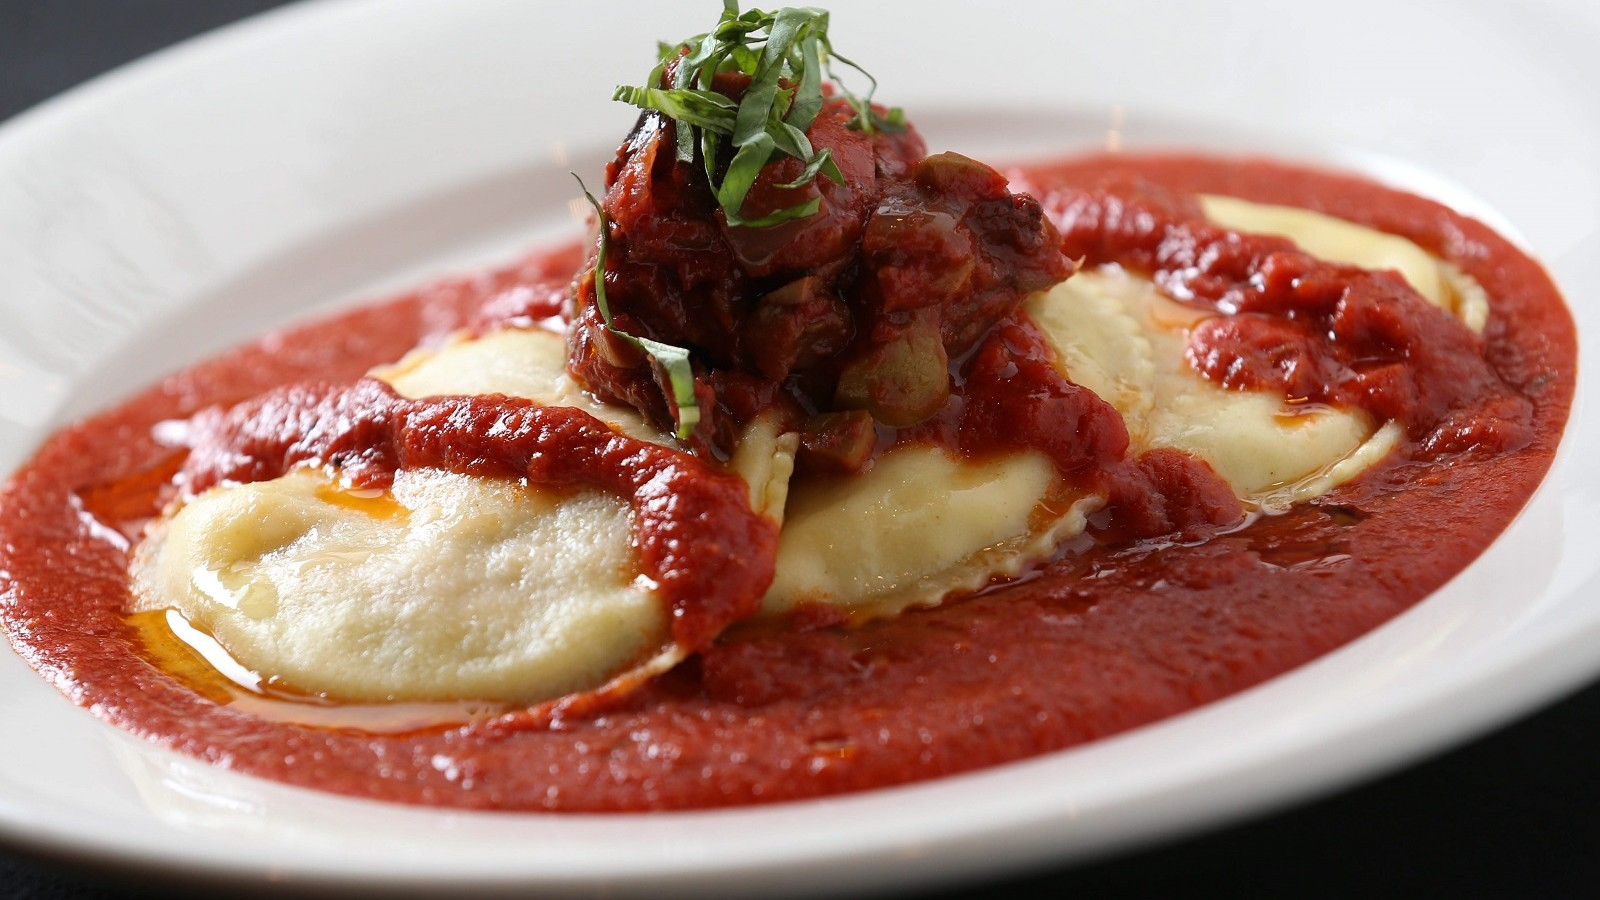 Osteria 166's tomato-eggplant ravioli is one of Andrew Galarneau's choices for great housemade pasta. (Sharon Cantillon/Buffalo News)